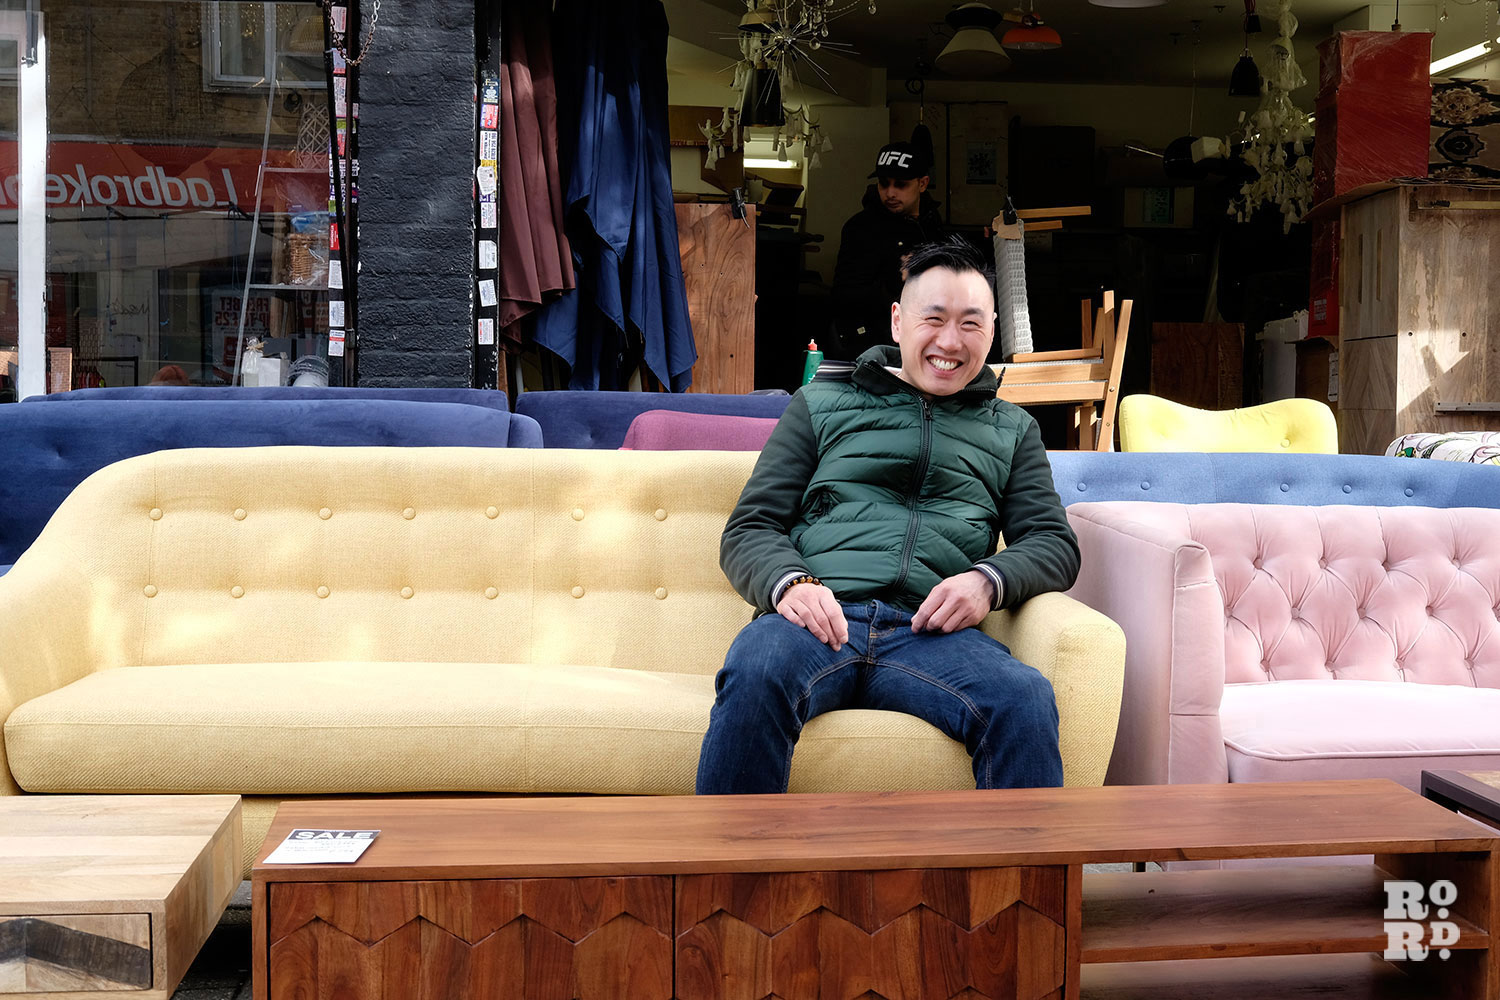 Shop owner sat on a yellow sofa he's selling outside his shop on Roman Road Market